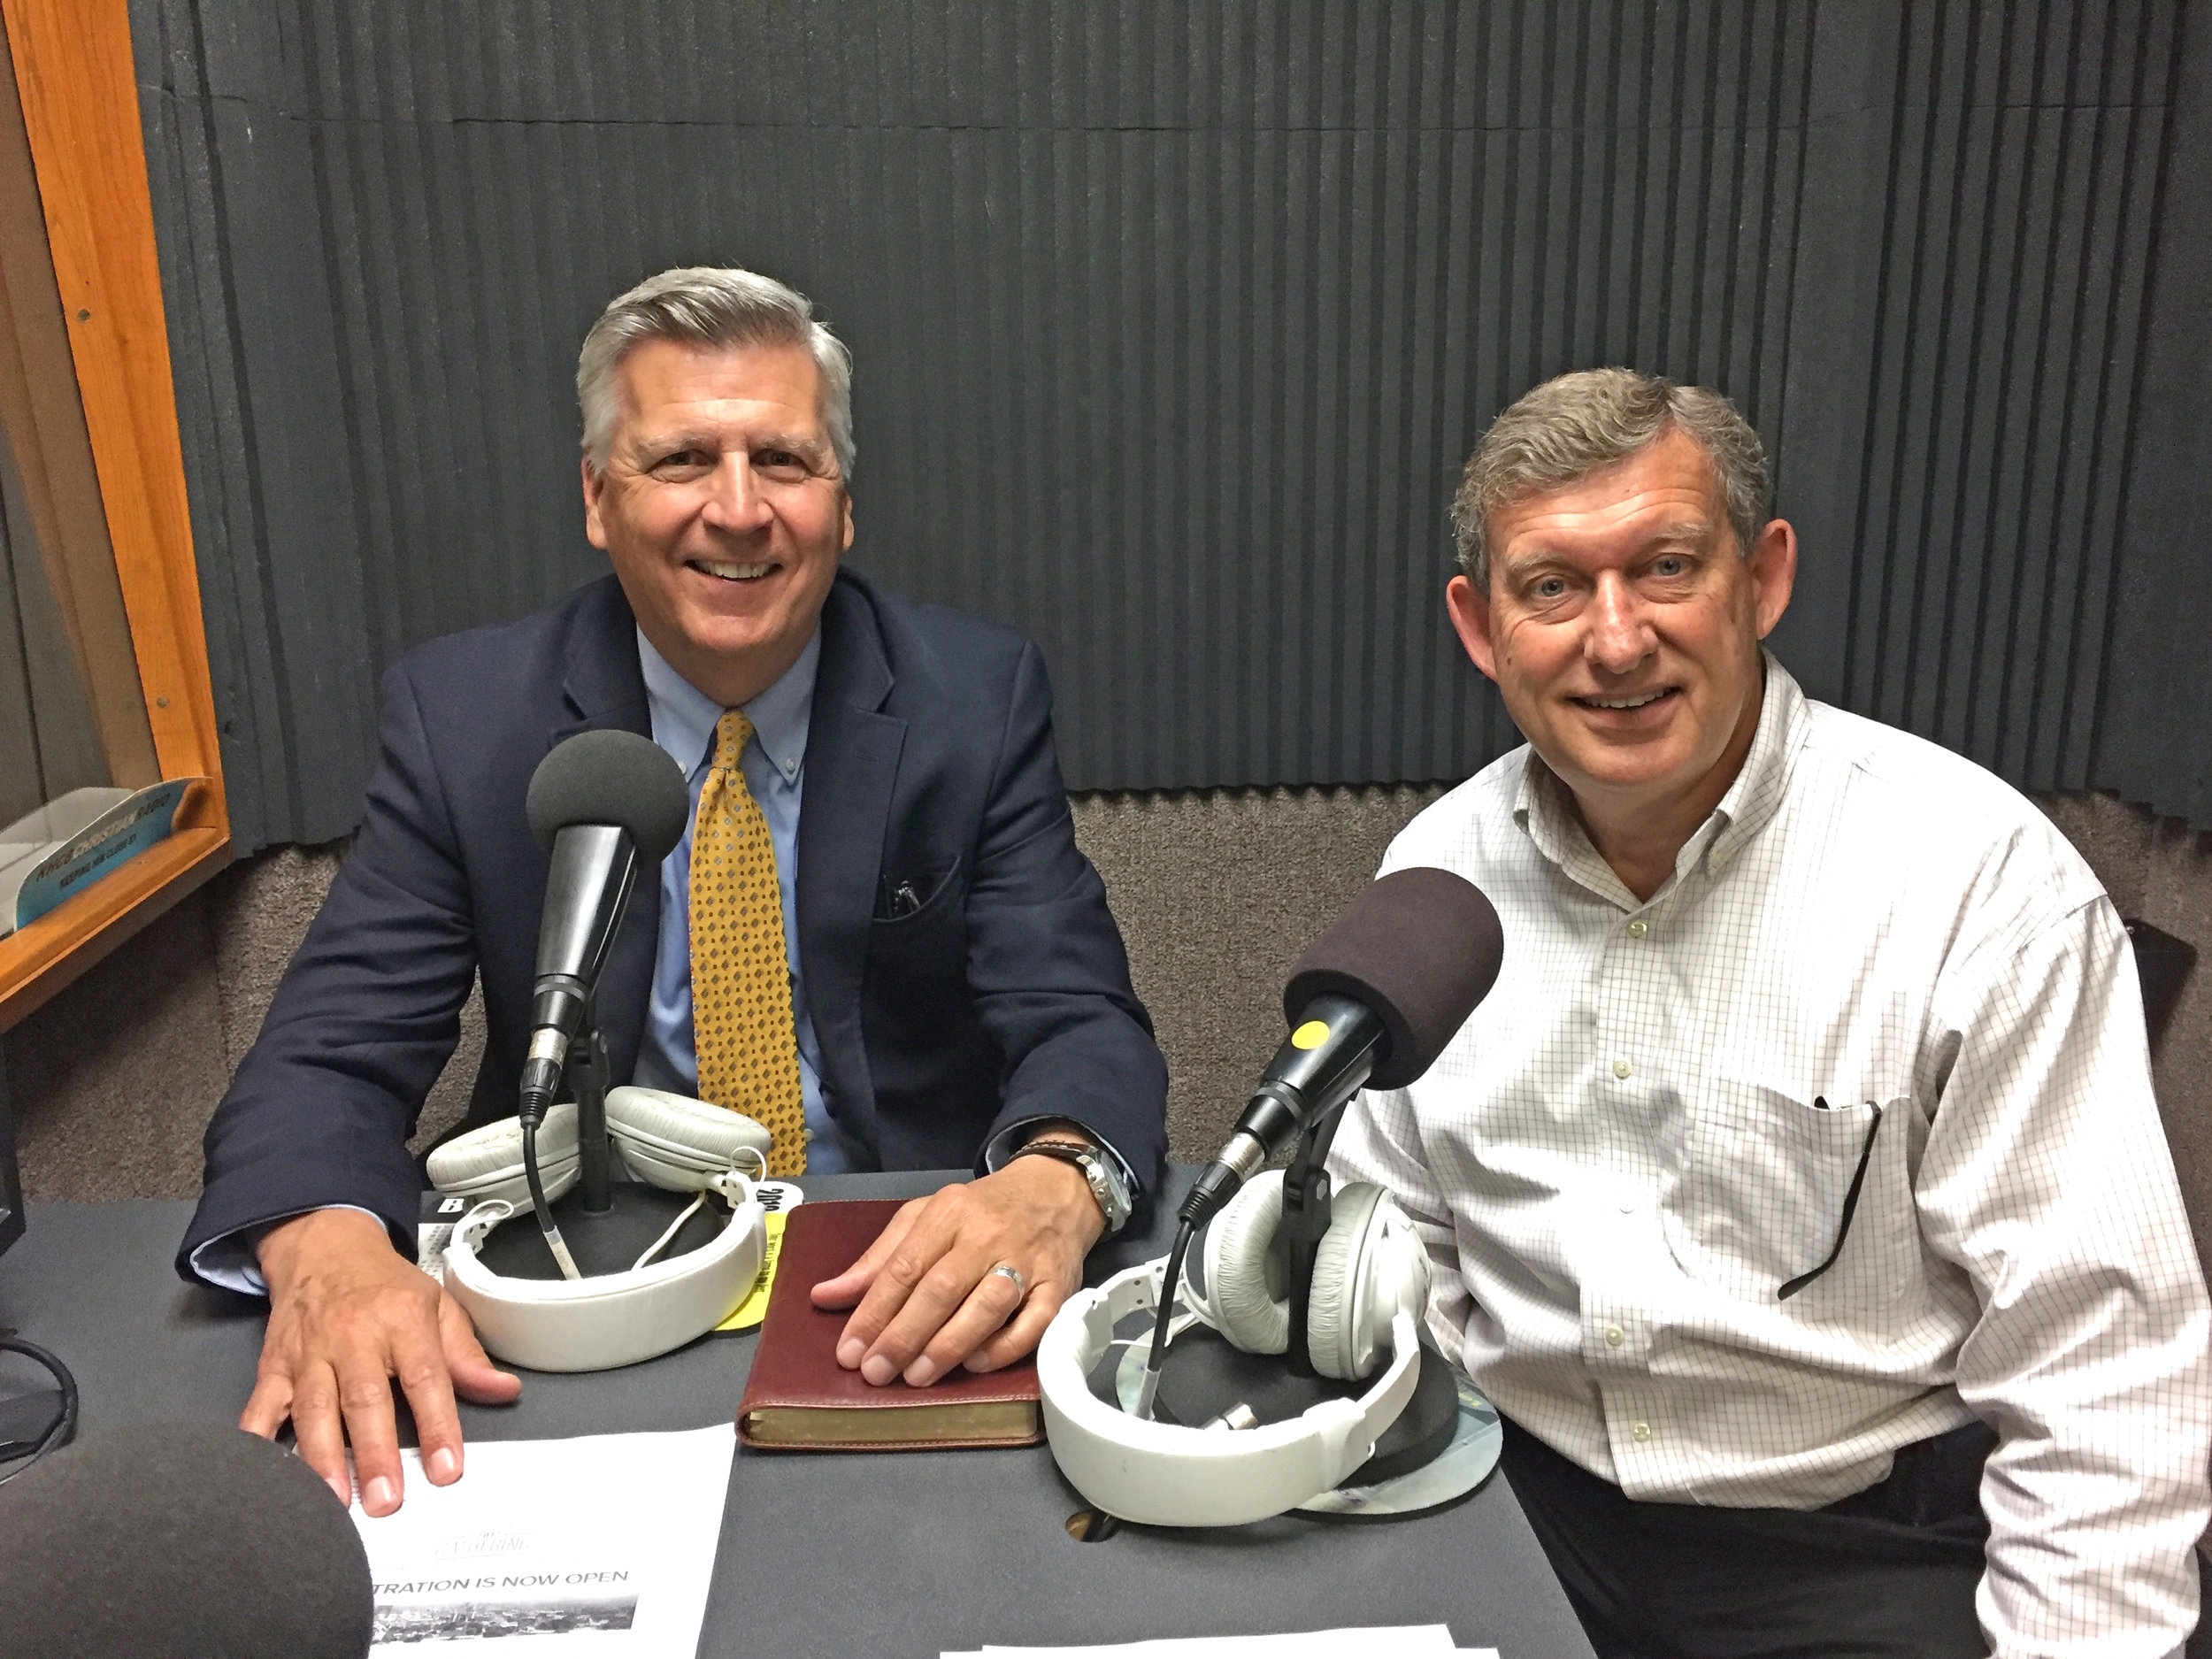 Chuck shares Crown's ministry with Bruce Munsterman of KHCB Radio Network in Houston.